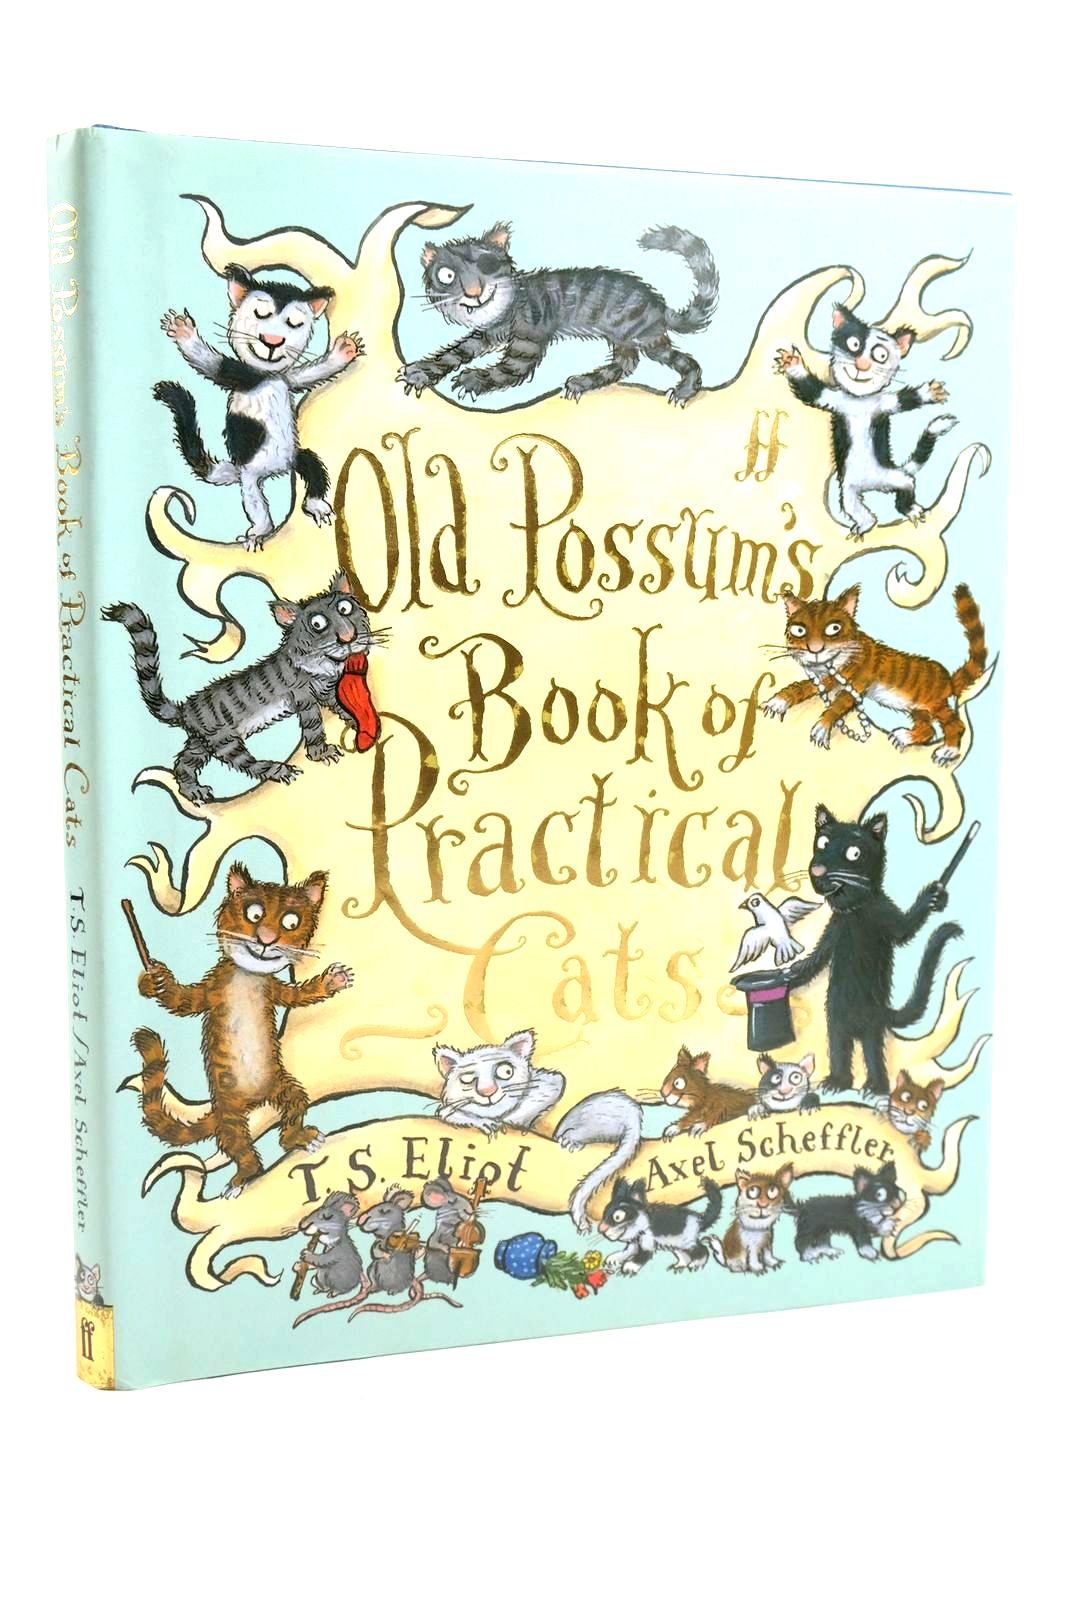 Photo of OLD POSSUM'S BOOK OF PRACTICAL CATS- Stock Number: 1319888